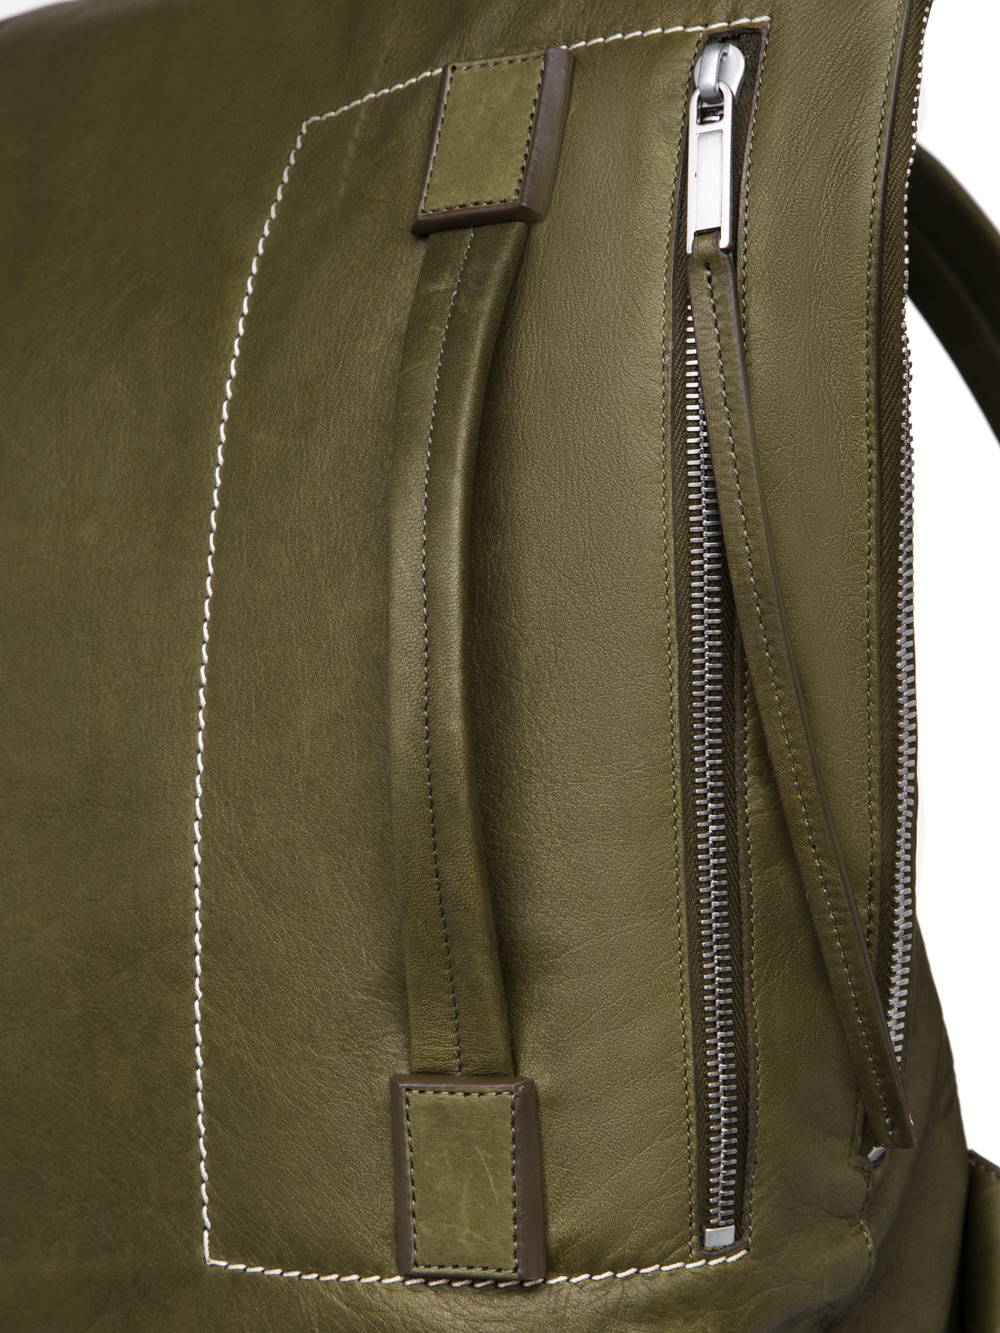 RICK OWENS FW18 SISYPHUS DUFFLE BACKPACK IN DIRTY GREEN CALF LEATHER